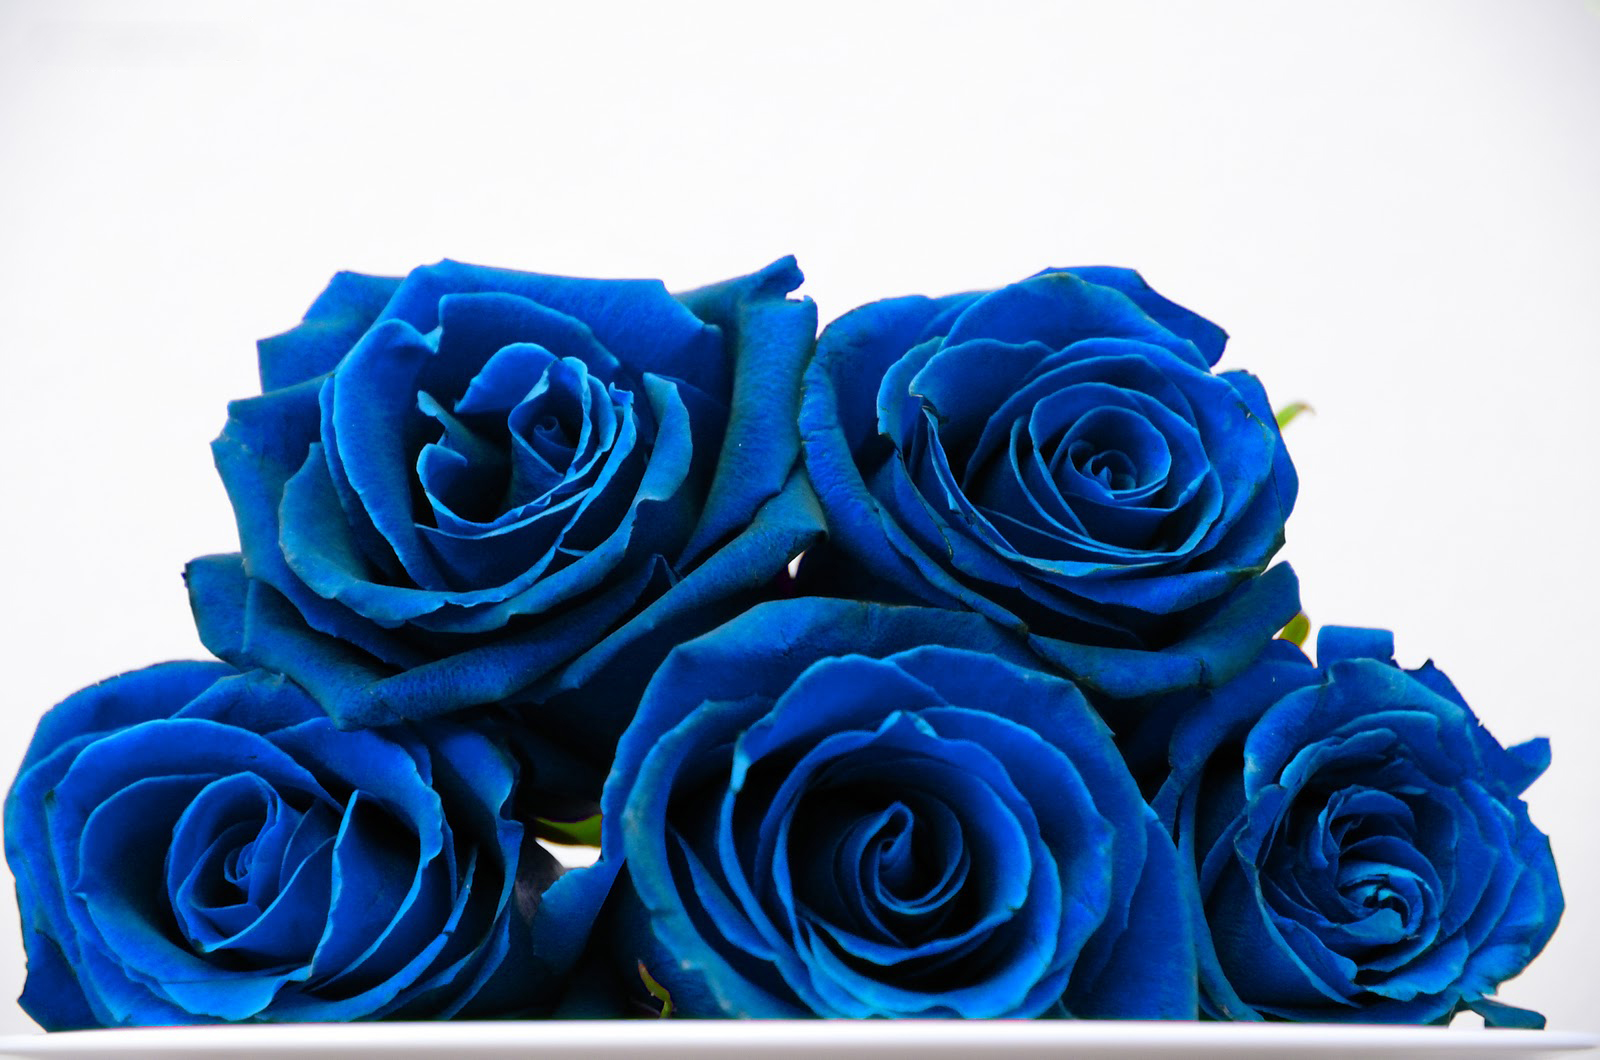 Blue Rose Wallpapers HDQ Beautiful Images